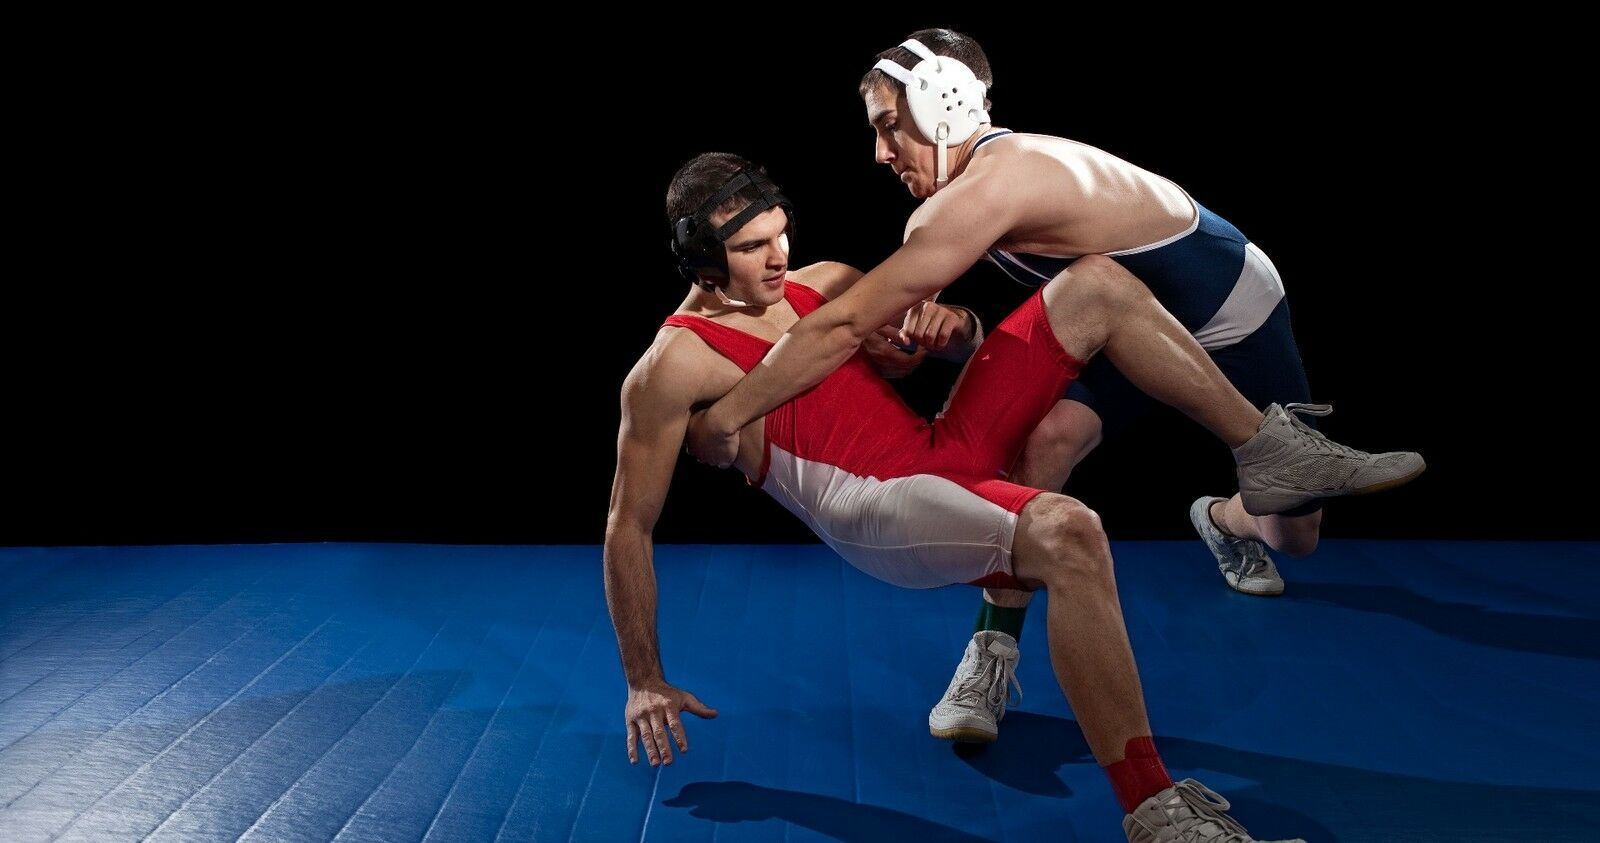 Freestyle Wrestling World Cup Iowa City All Session Tickets (April 7-8)